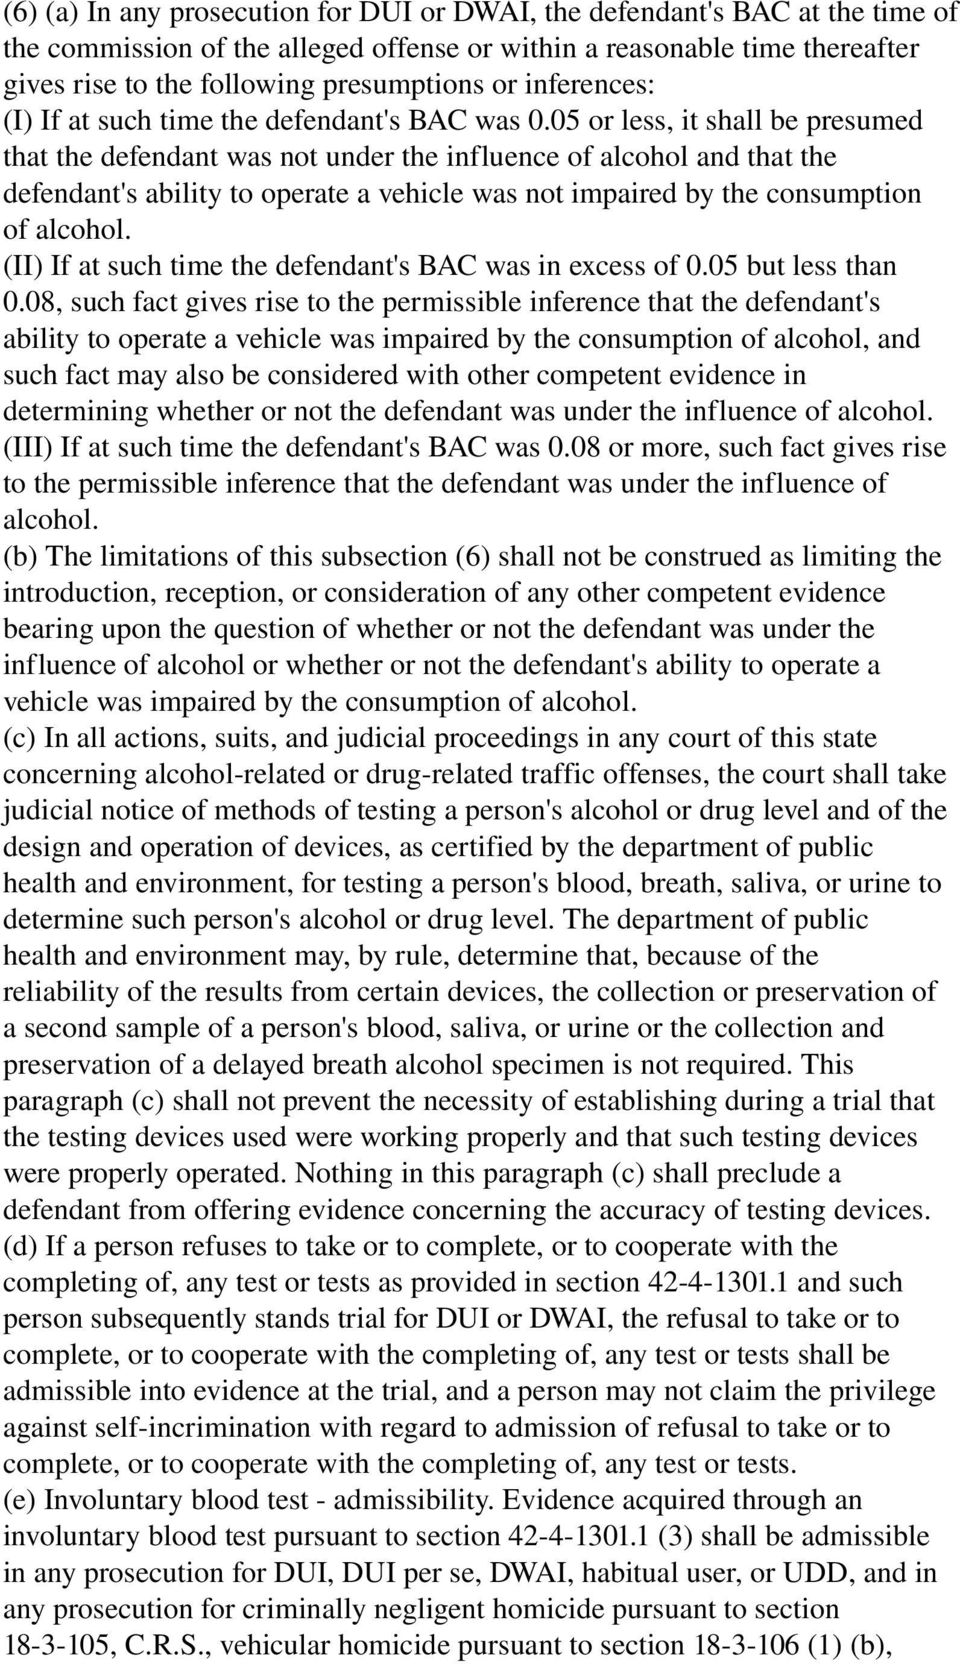 05 or less, it shall be presumed that the defendant was not under the influence of alcohol and that the defendant's ability to operate a vehicle was not impaired by the consumption of alcohol.